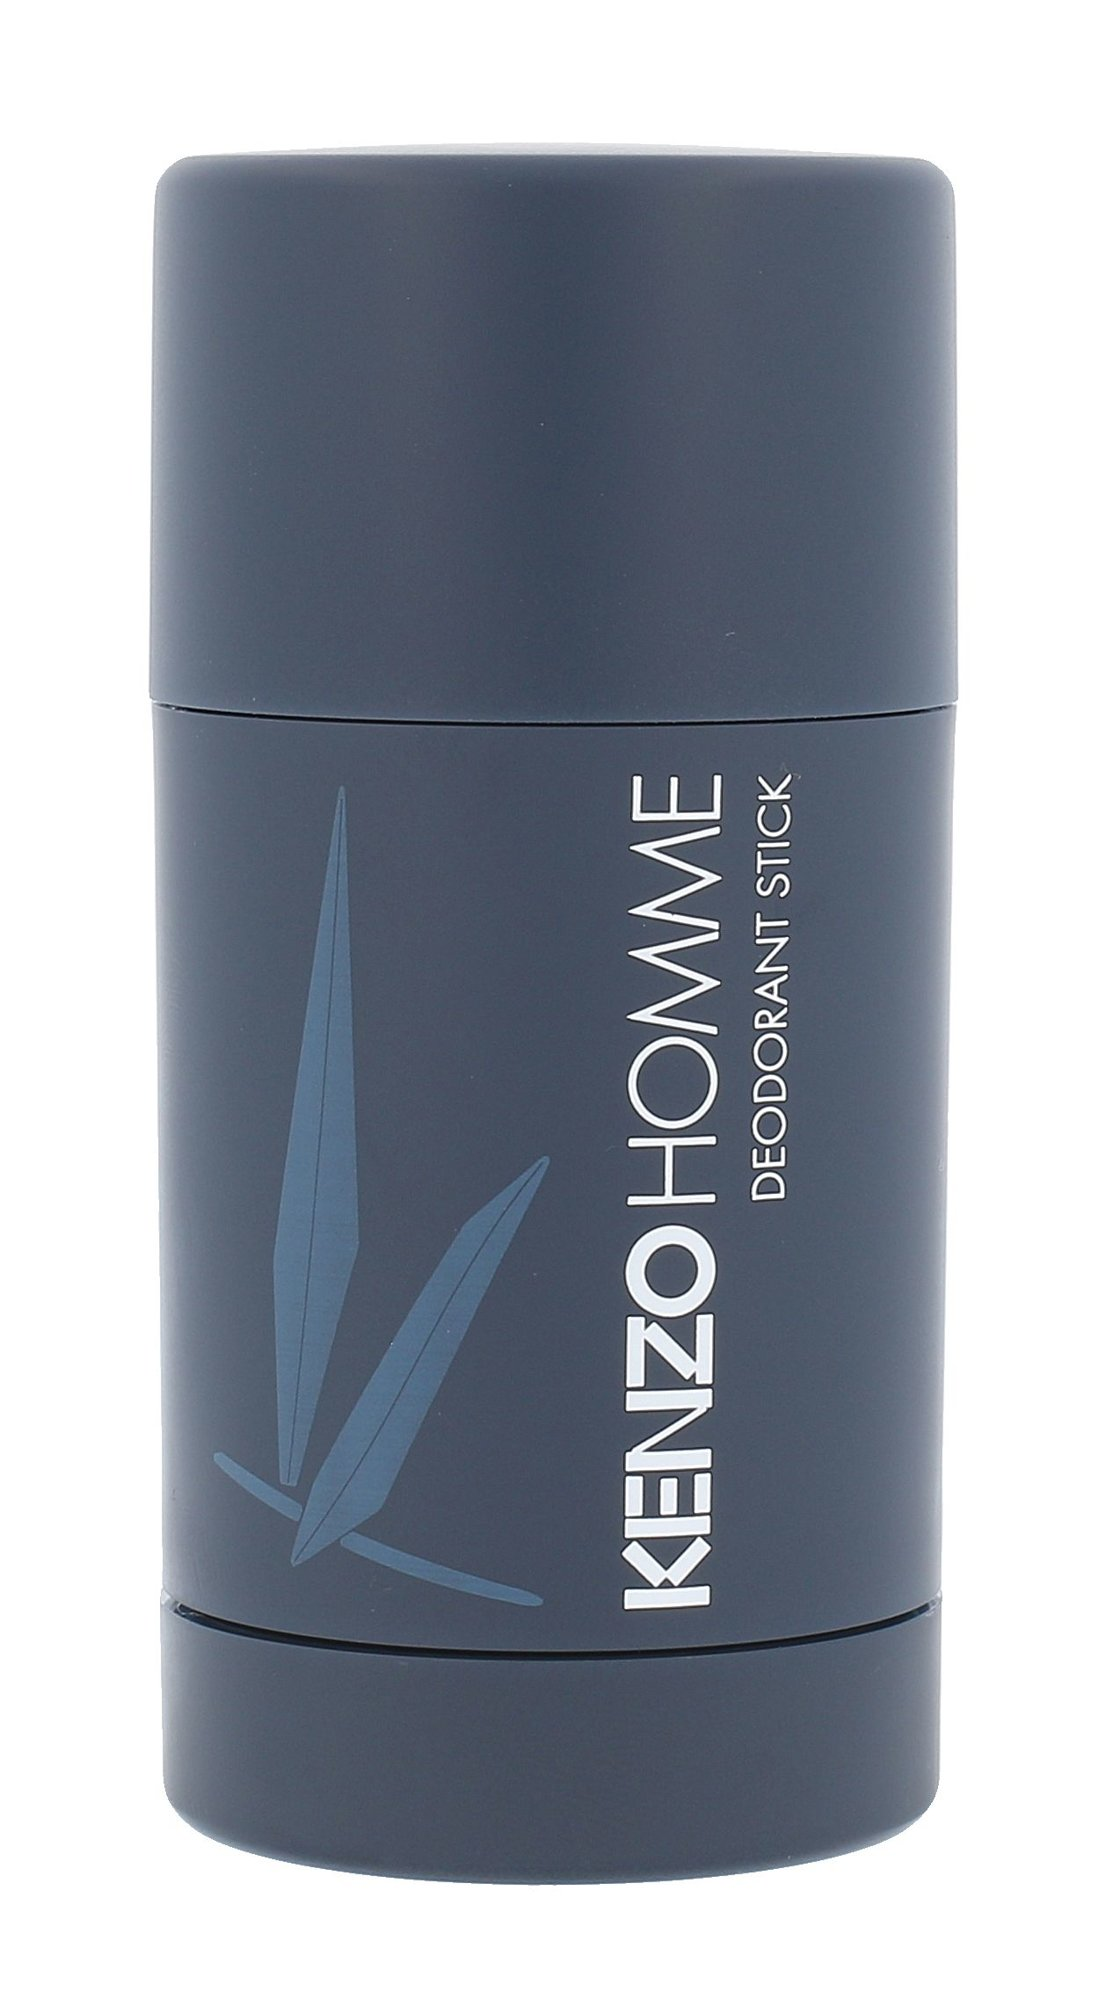 KENZO Pour Homme Deostick 75ml